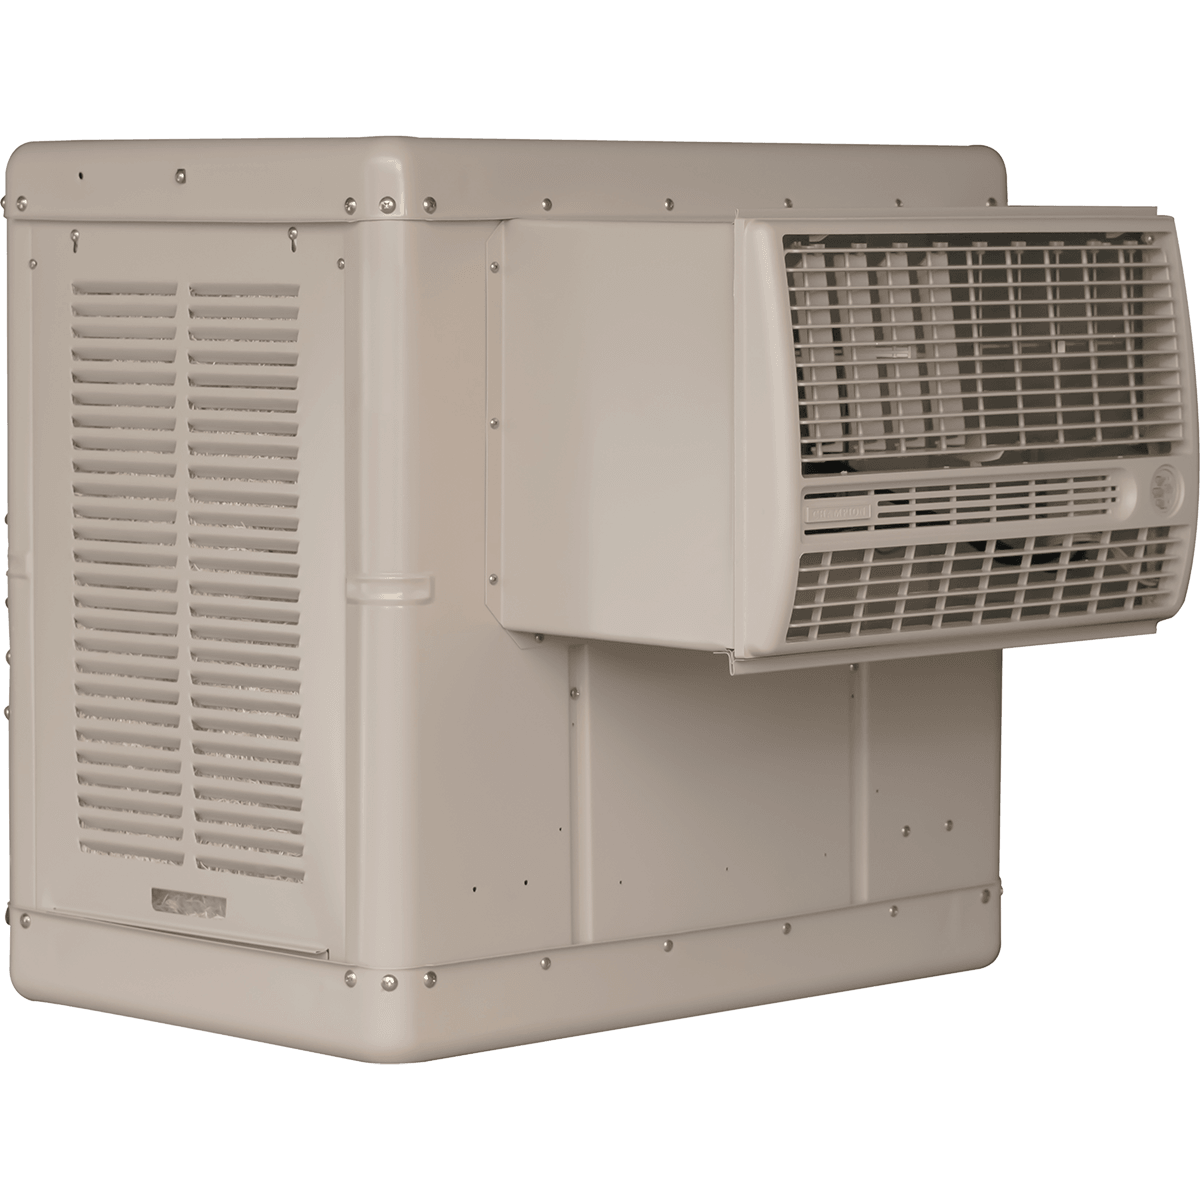 Buy Cheap Aircare Rn35w Window Evaporative Cooler With Remote Buyairtreatment Buy Airtreatment Evaporative Cooler Windows Swamp Cooler